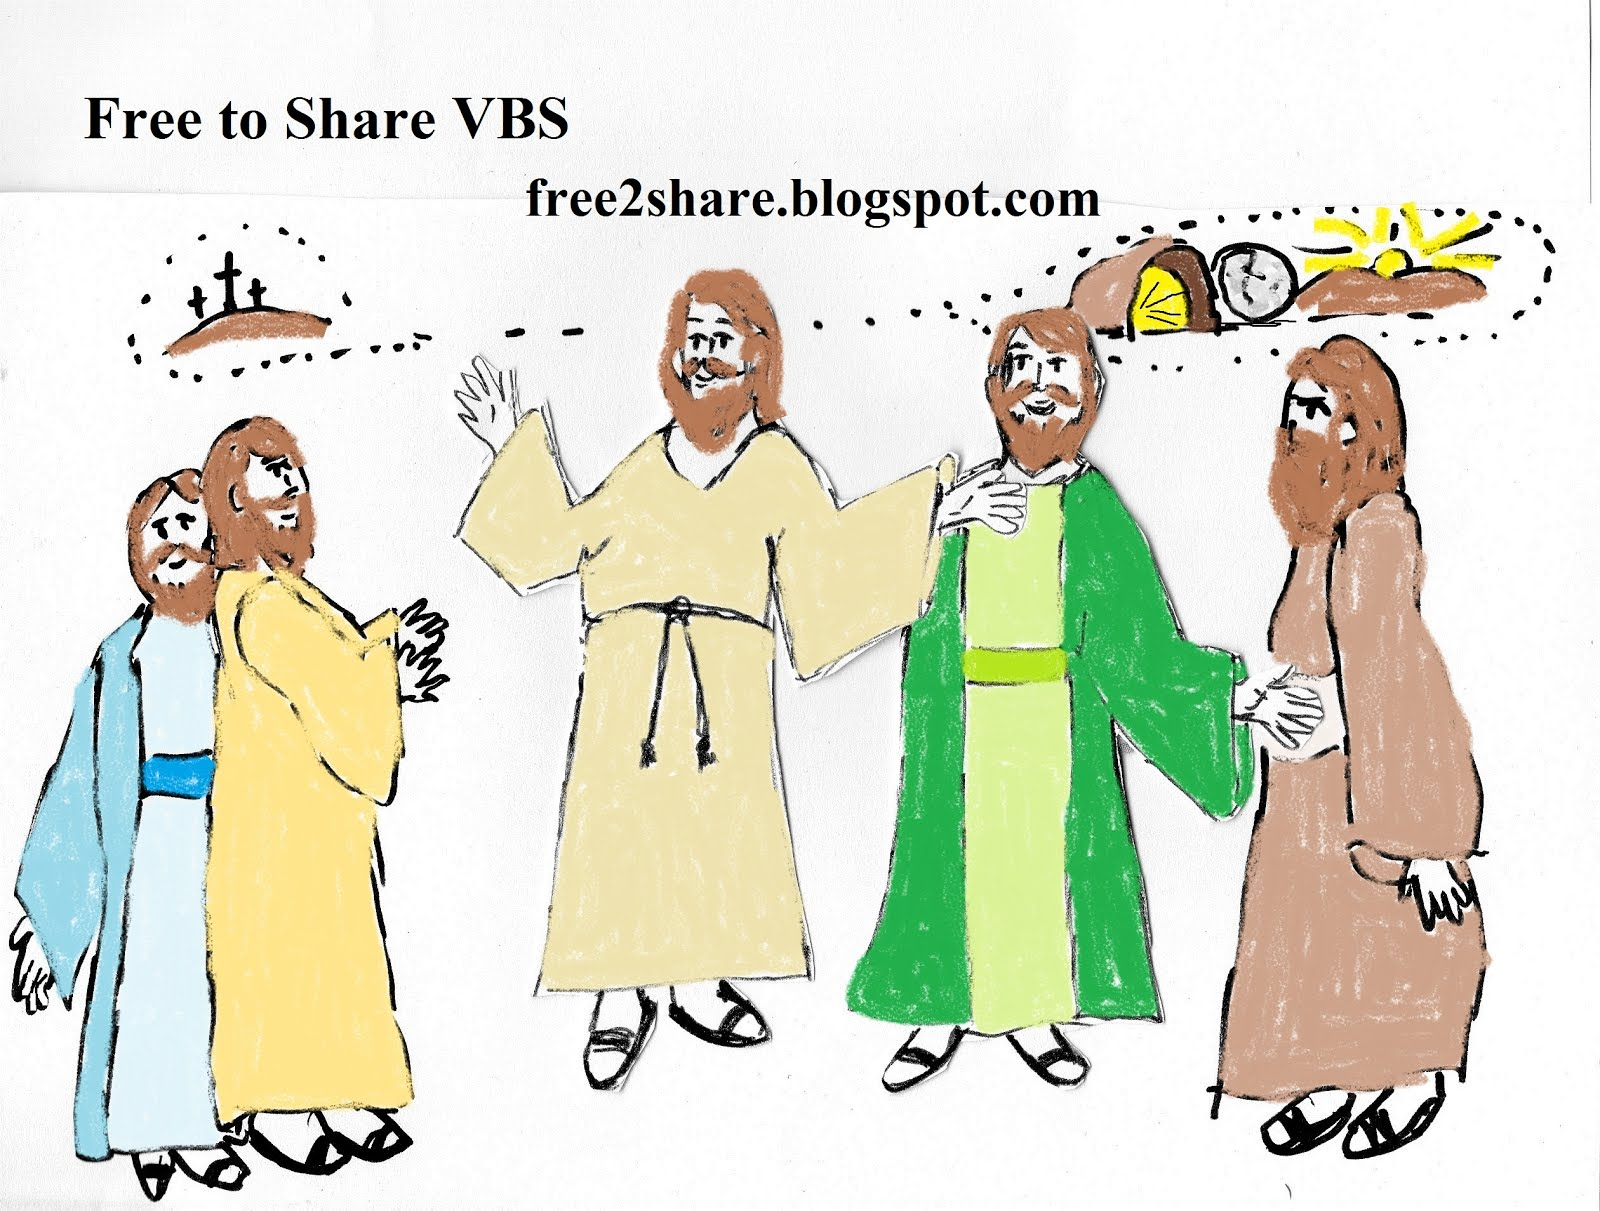 Free2ShareVBS